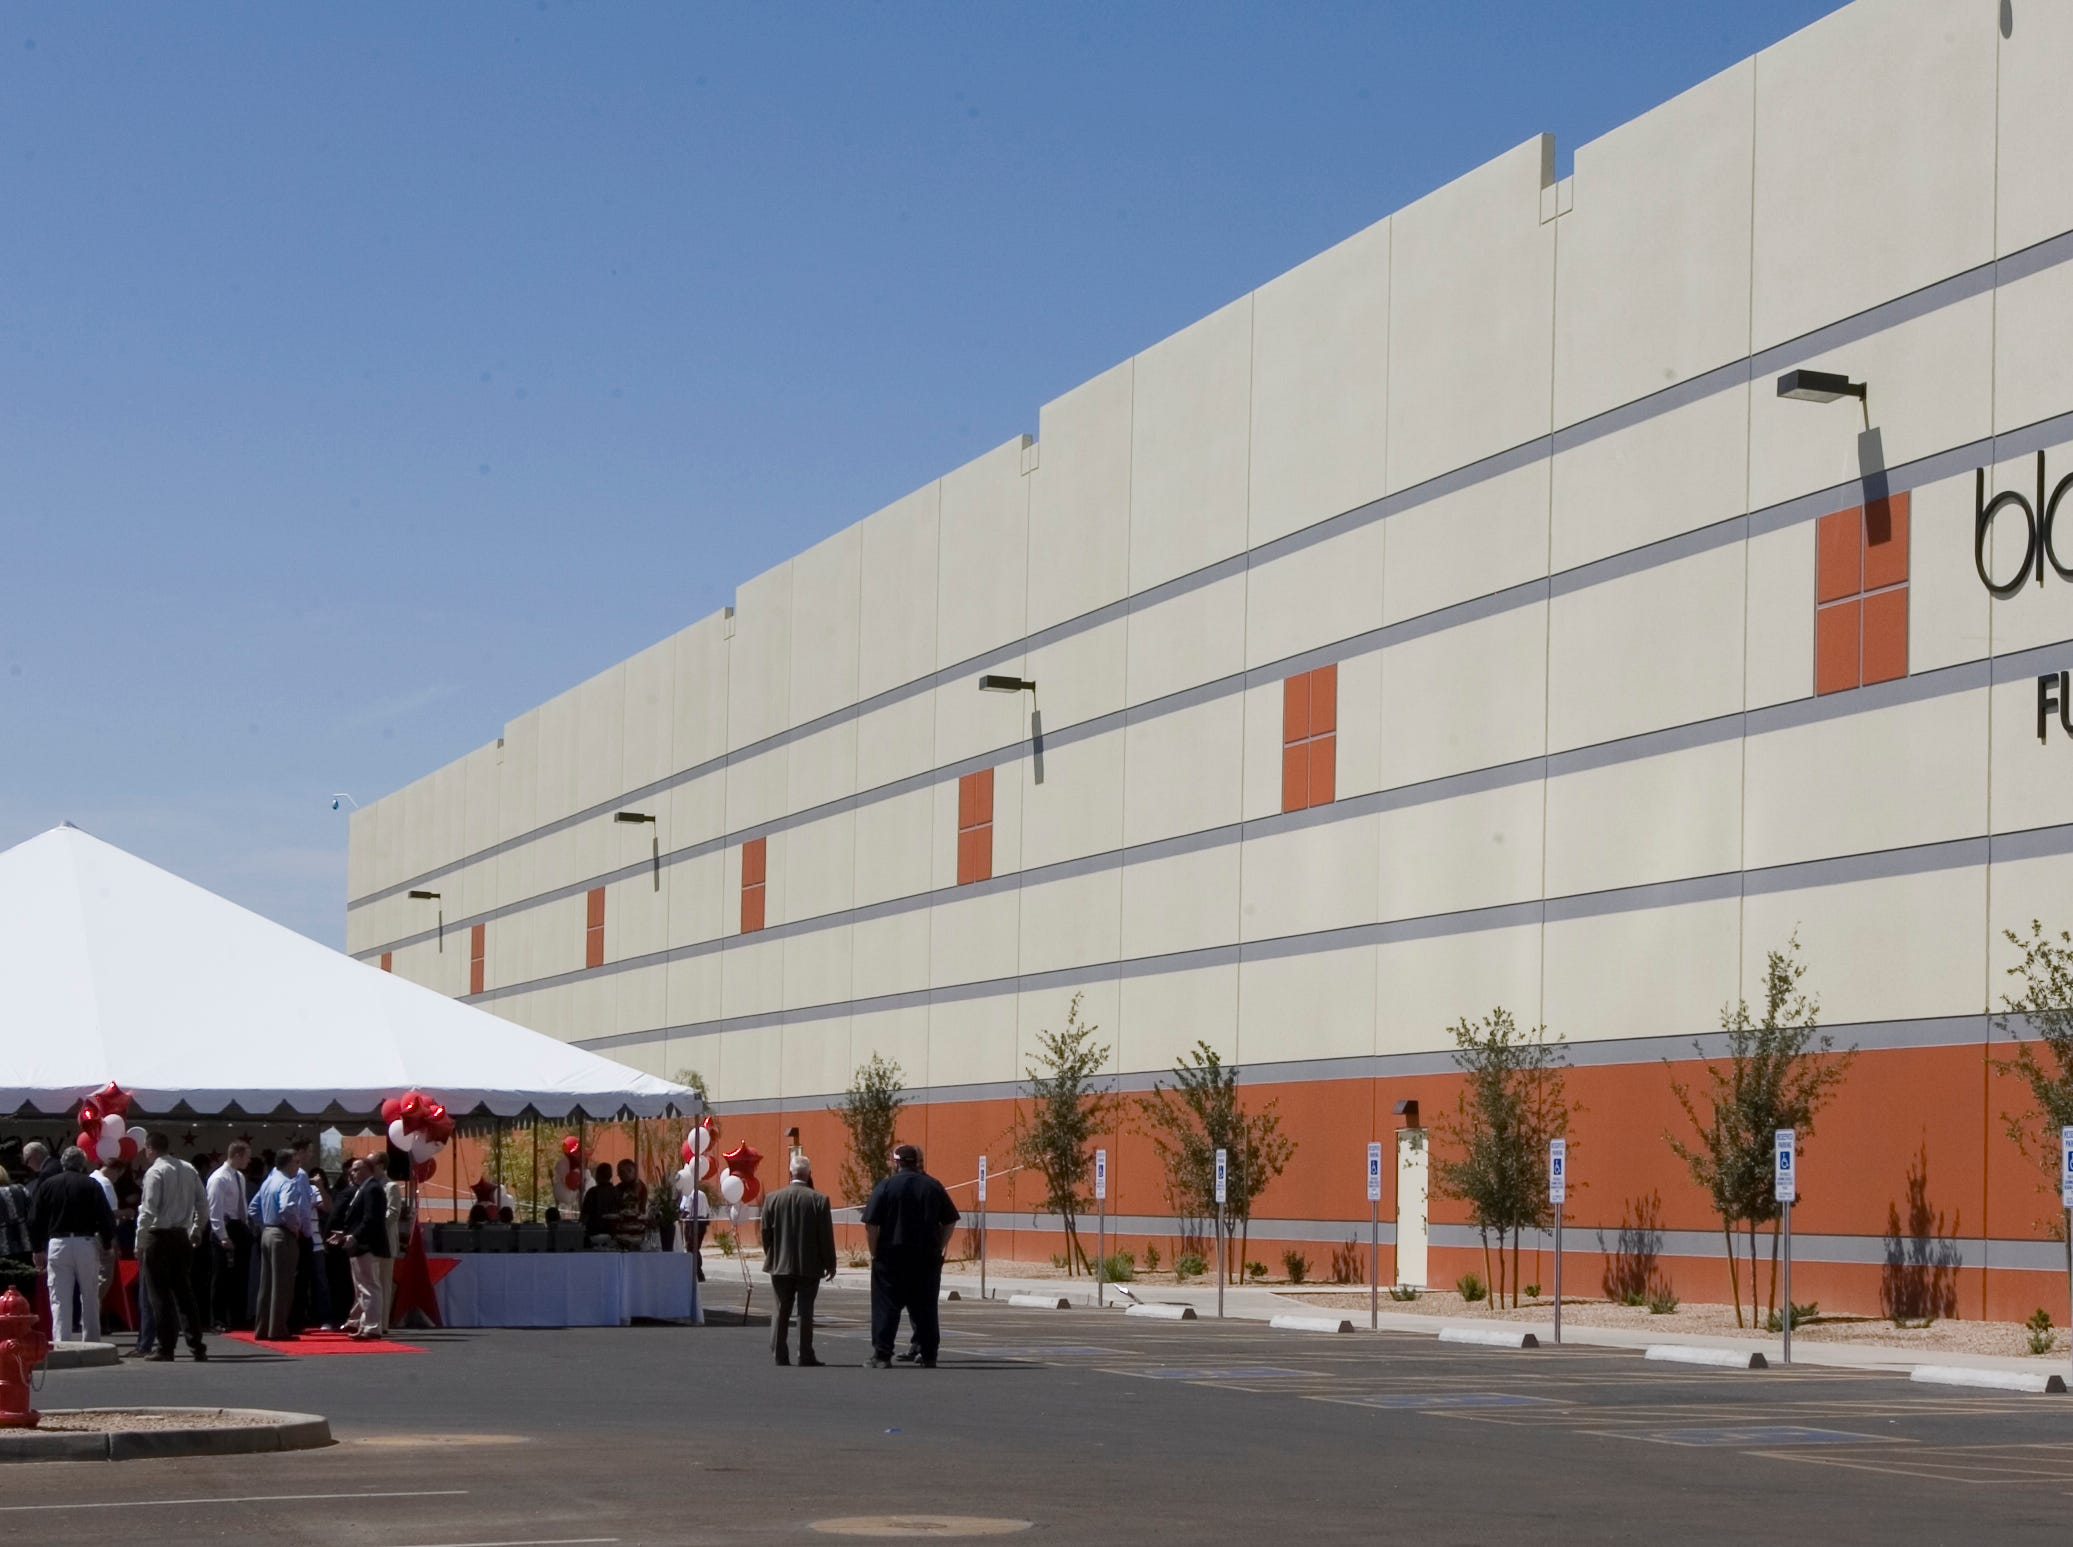 The Macy's Fulfillment Center in Goodyear is the city's second-largest employer, with more than 1,000 employees.